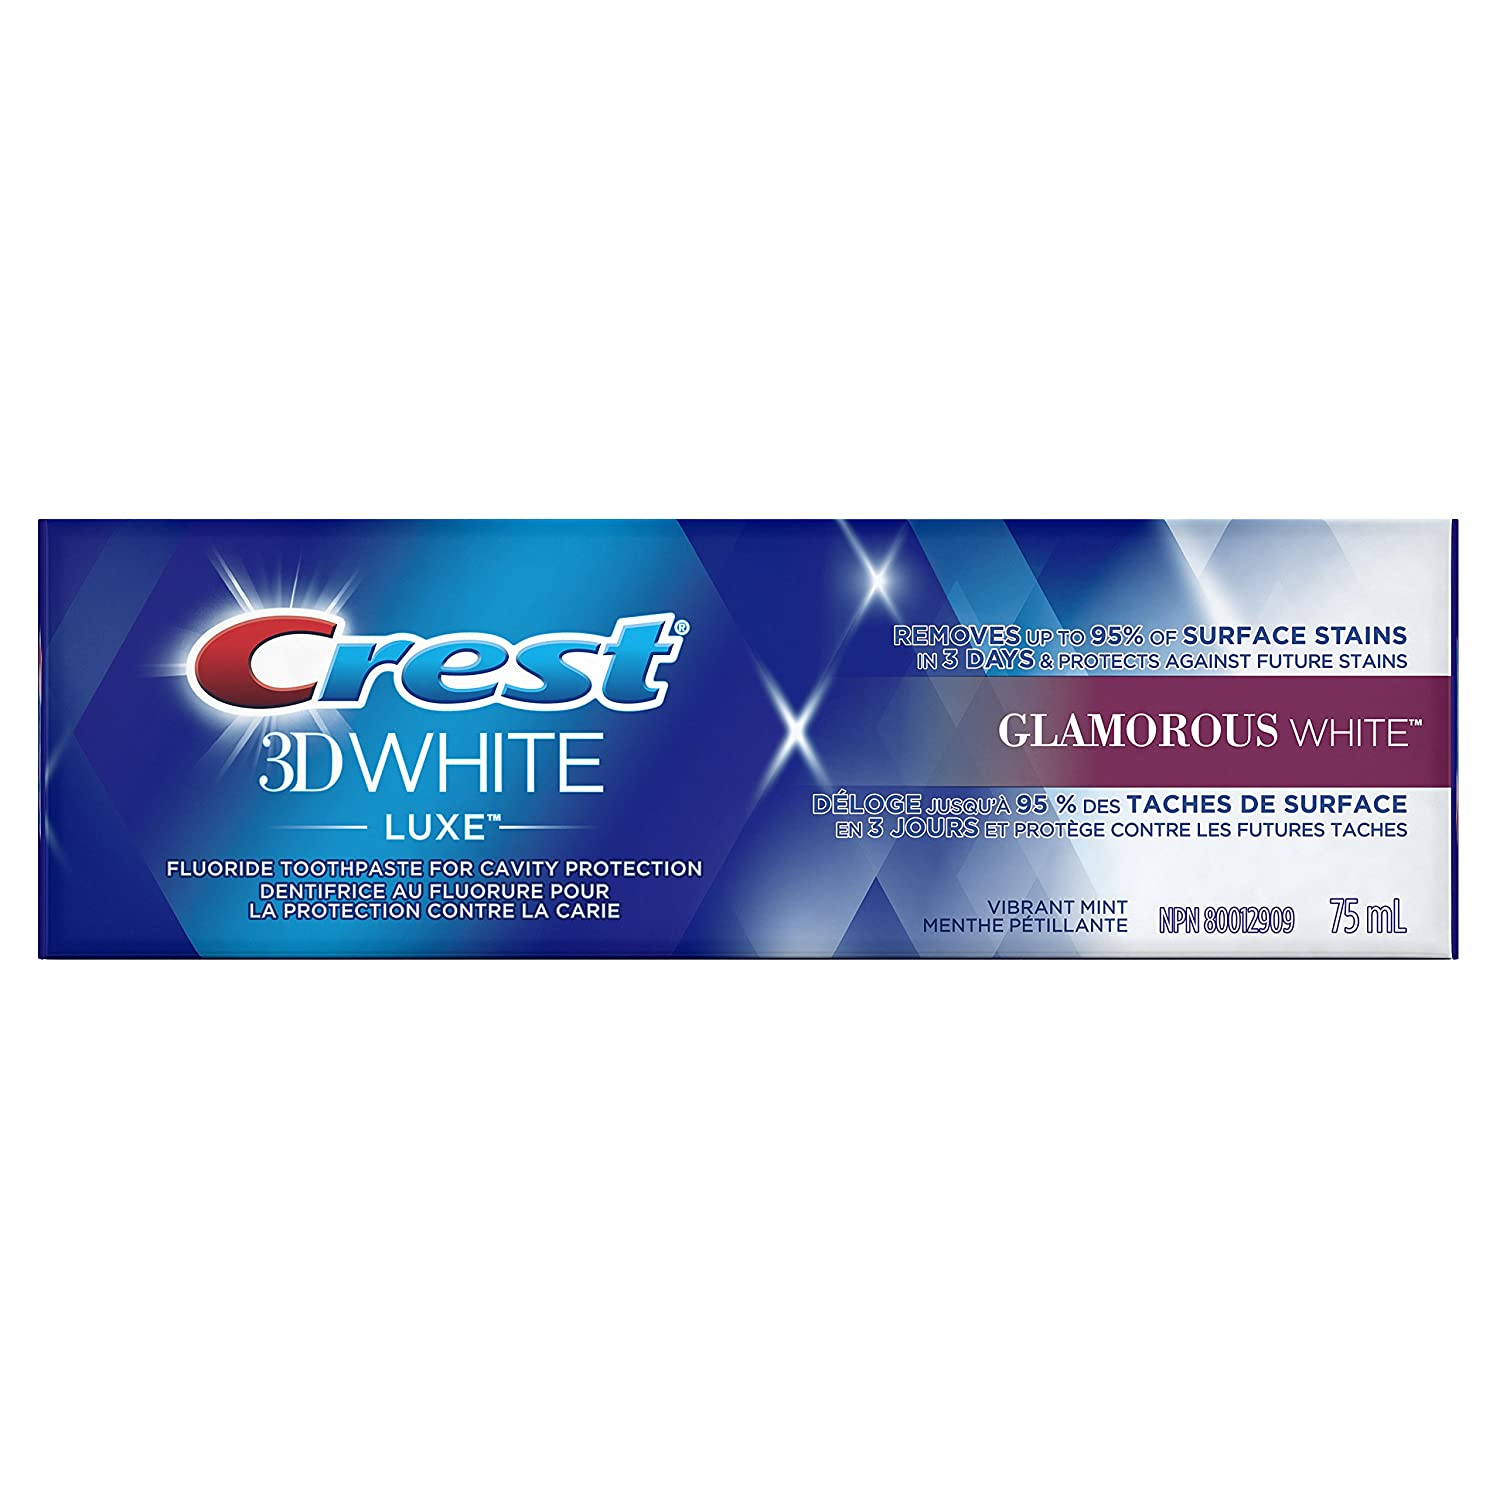 Crest 3D White Luxe Glamorous White Whitening Toothpaste - 100 ml Procter and Gamble